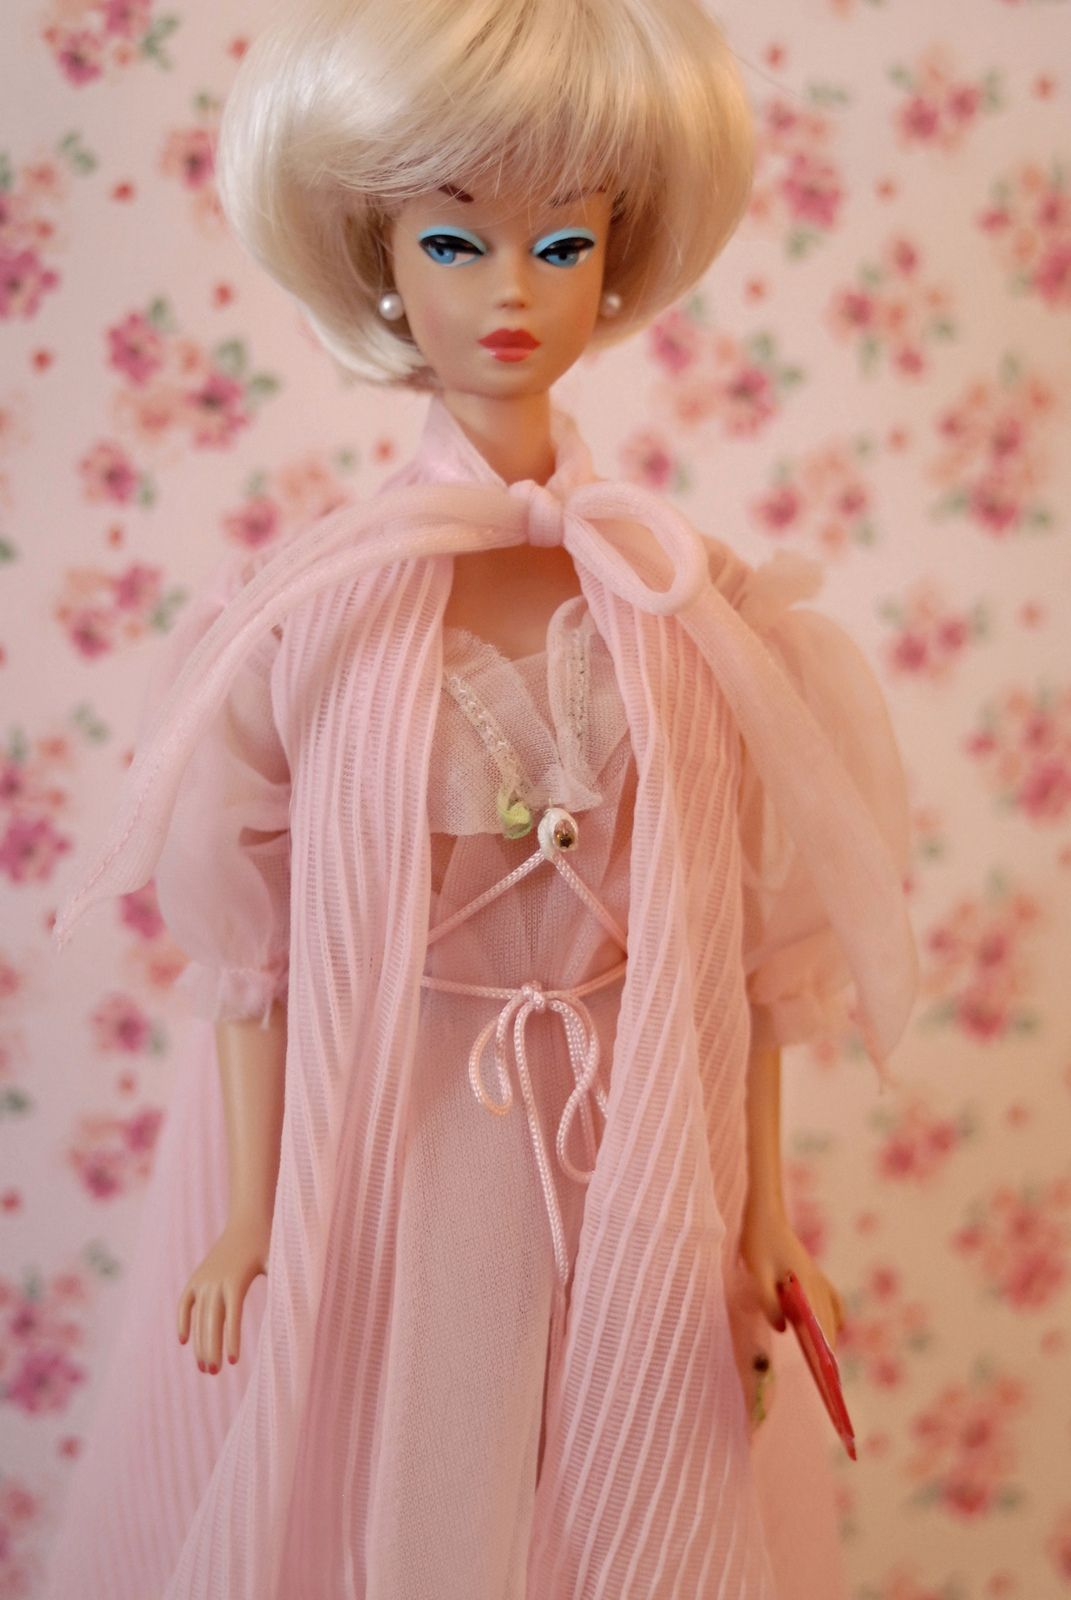 Reproduction Fashion Queen Barbie   Pinterest   Barbie doll and     Reproduction Fashion Queen Barbie   by RomitaGirl67